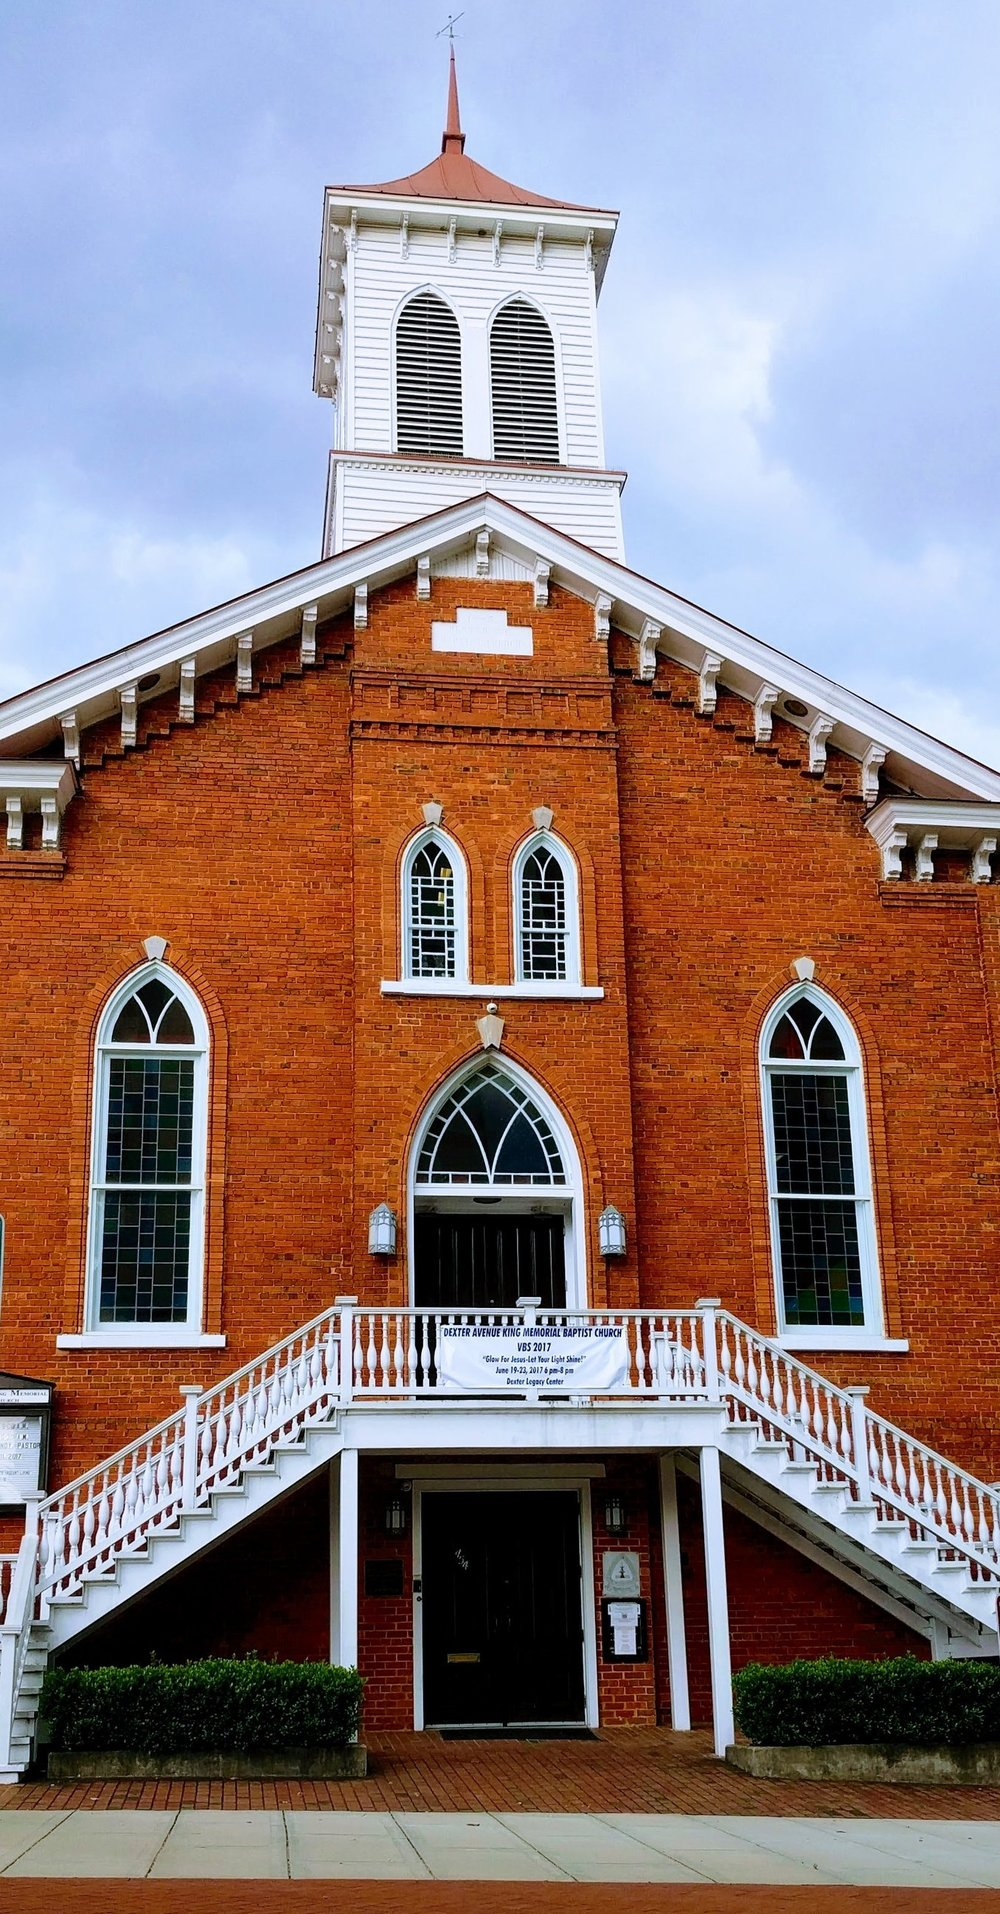 Dexter Avenue Baptist Church- Martin Luther King Jr's church